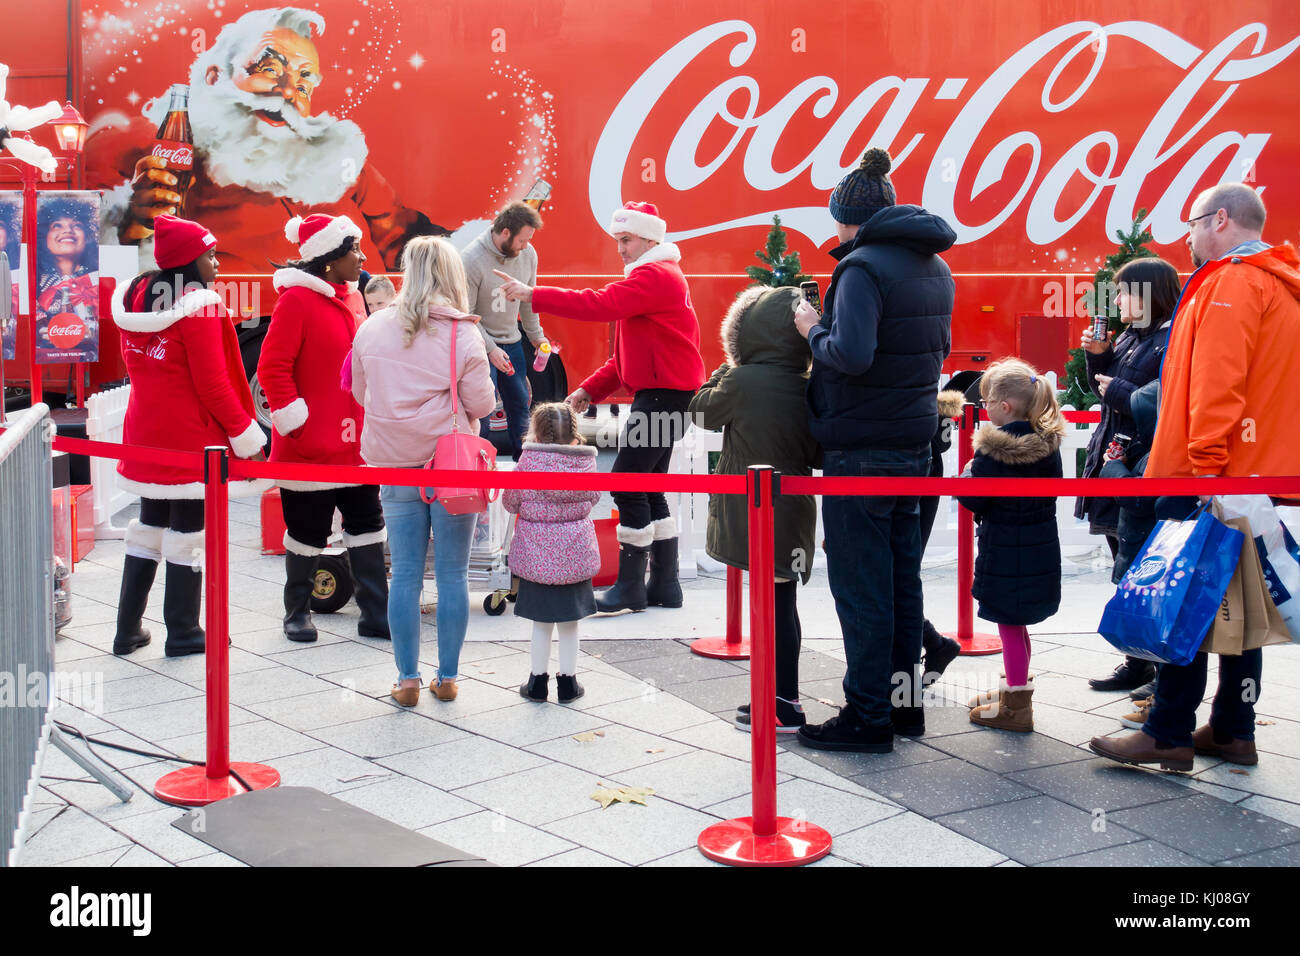 Cardiff, United Kingdom -  November 19, 2017: People are queueing in front of the Coca Cola Christmas truck in Cardiff - Stock Image